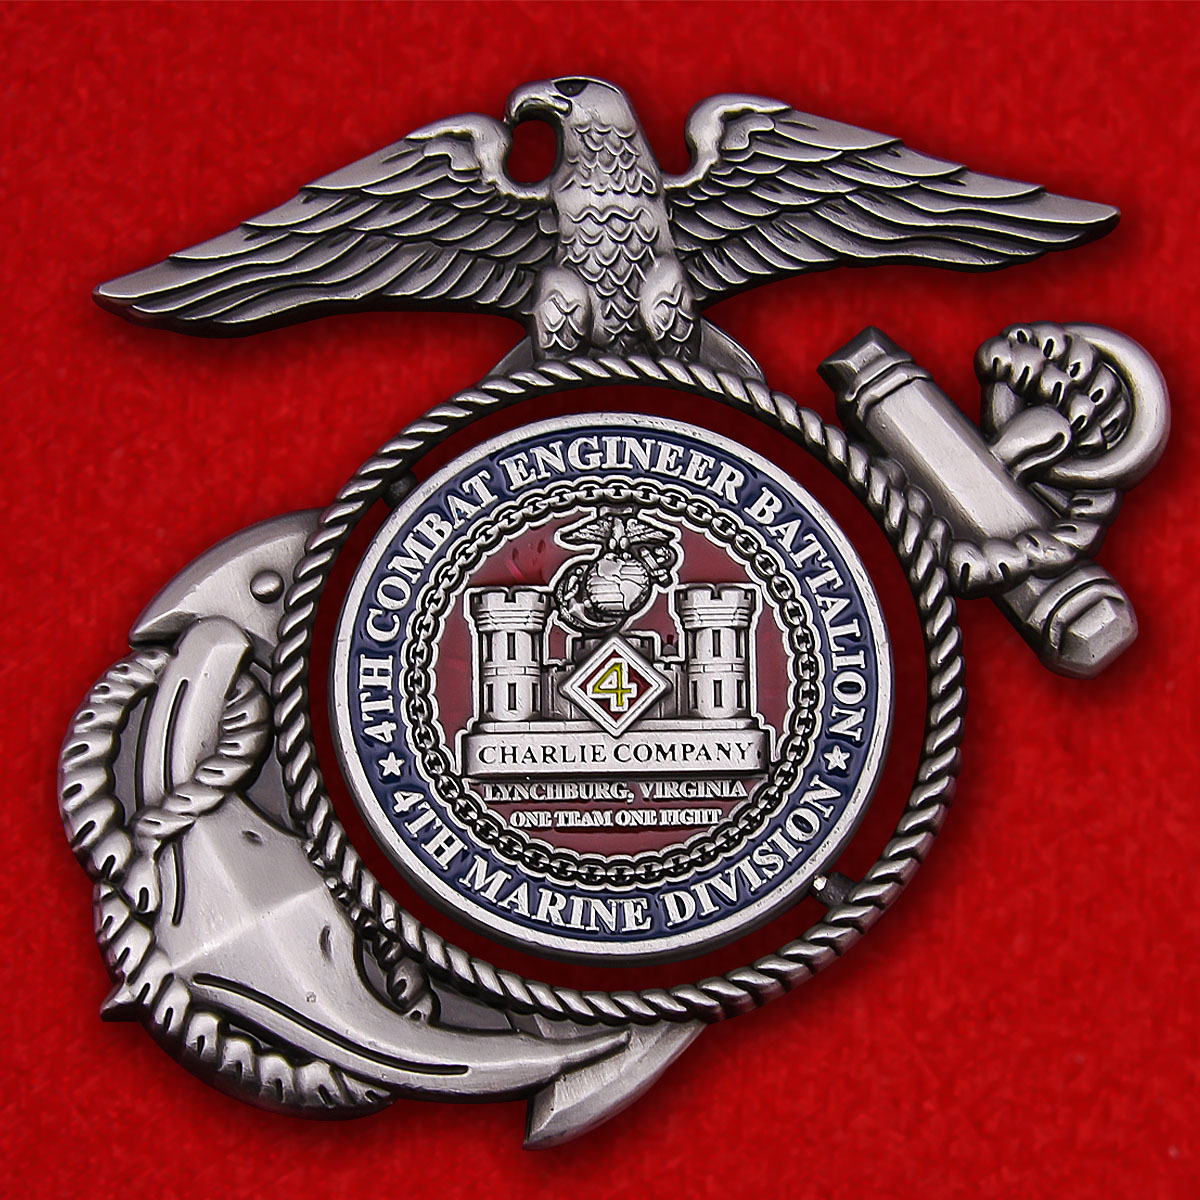 US Marine Corps 4th Combat Engineer Battalion 4th Marine Division Charlie Company Challenge Coin